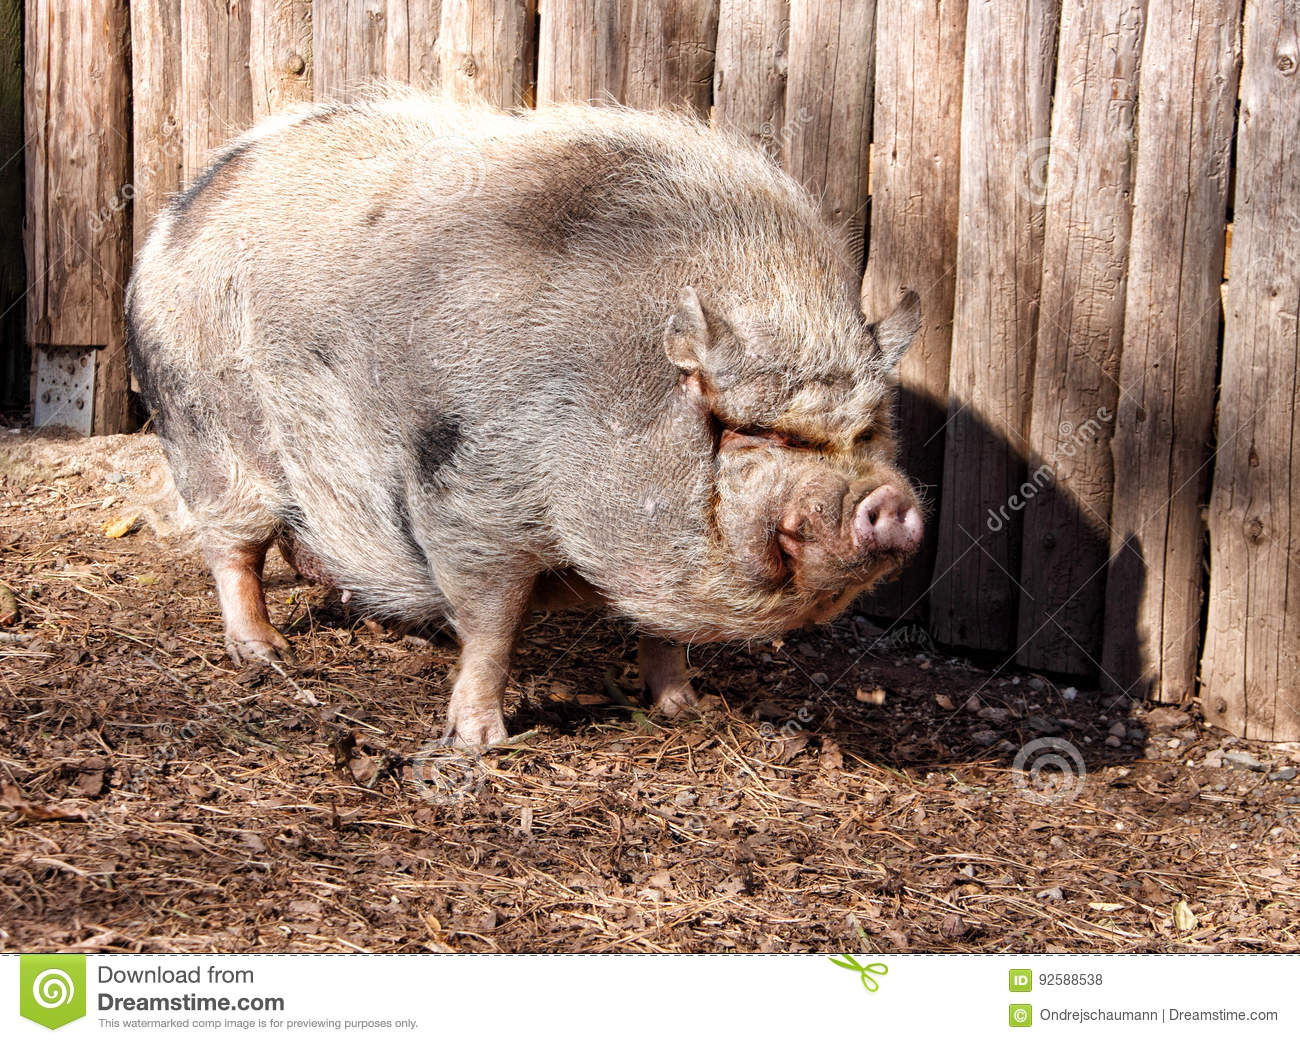 Genetic engineering of animals | TRANSHUMANISM NEWS |Really Fat Pigs